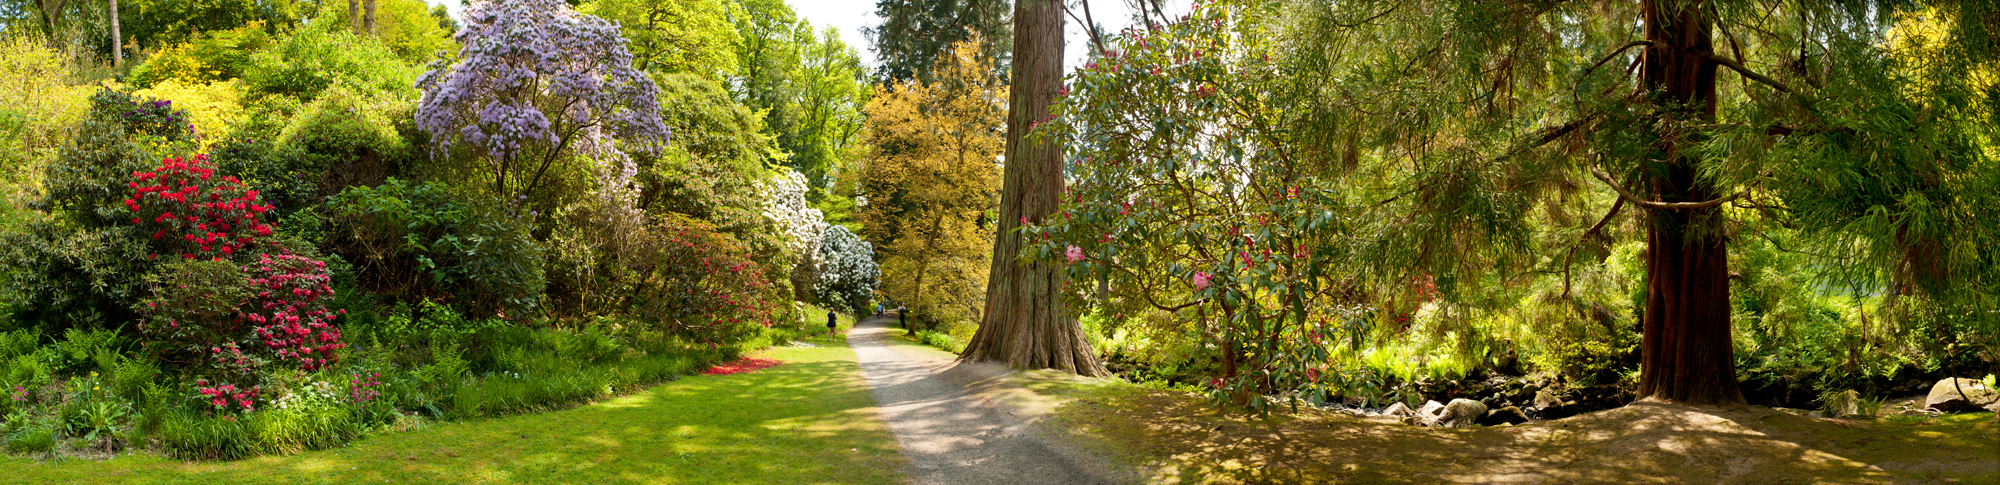 Bodnand garden collection panorama art for Garden images